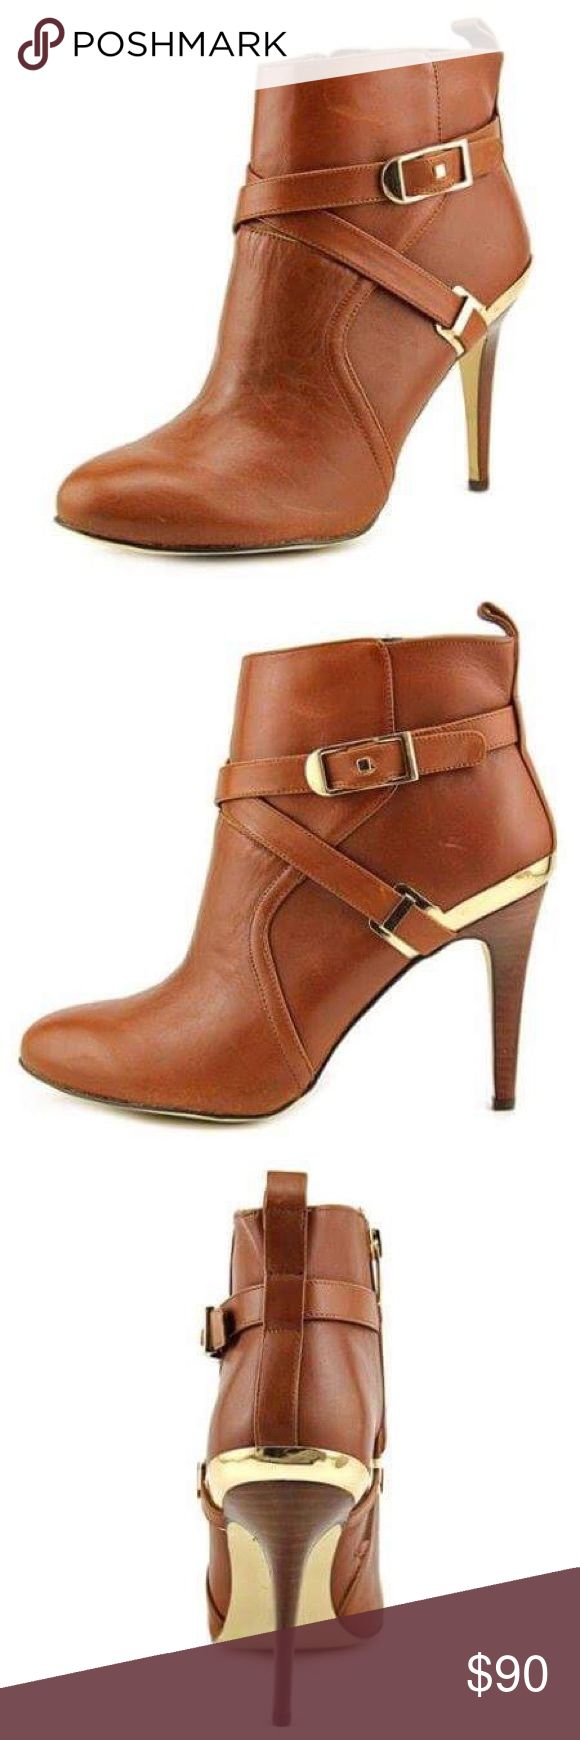 Mariage - NIB Marc Fisher Aprille Leather Bootie NWT